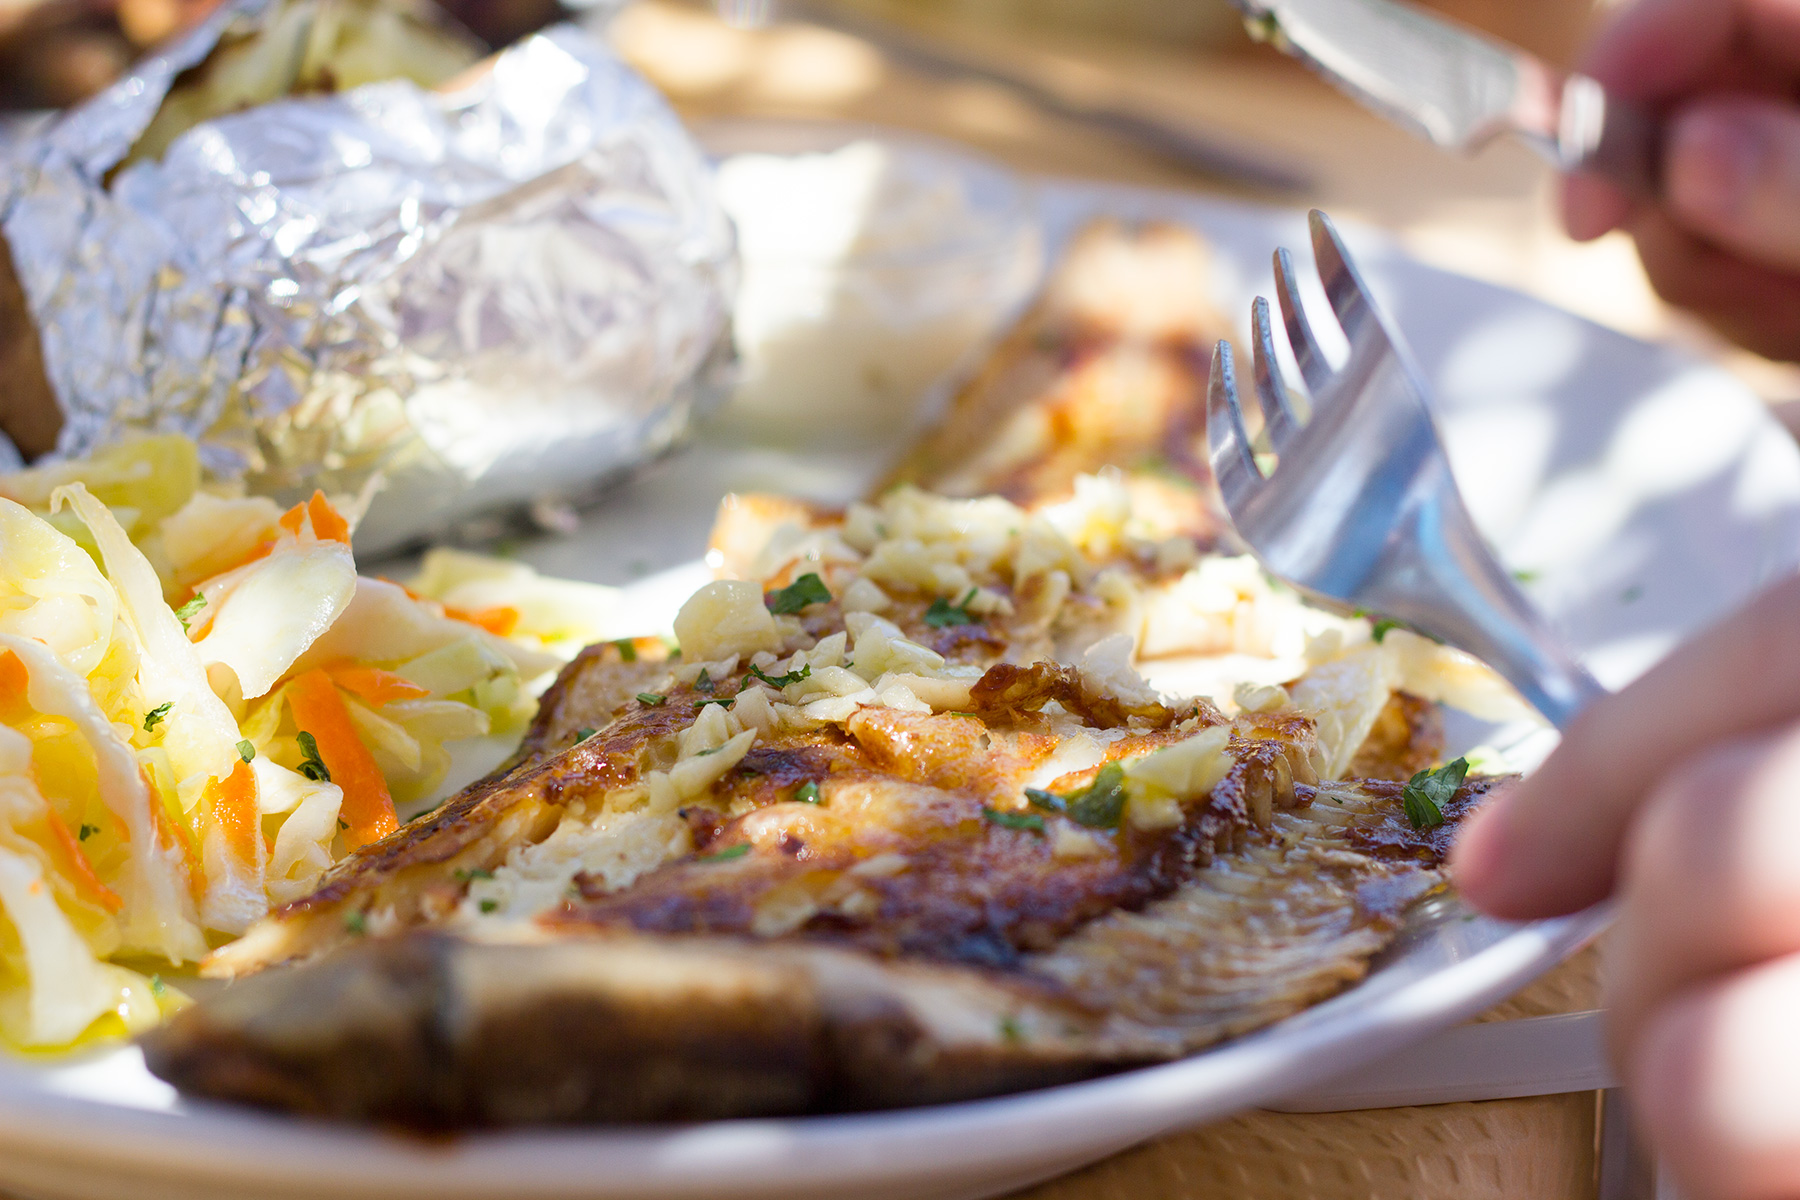 fresh-barbequed-sole-fish-spain